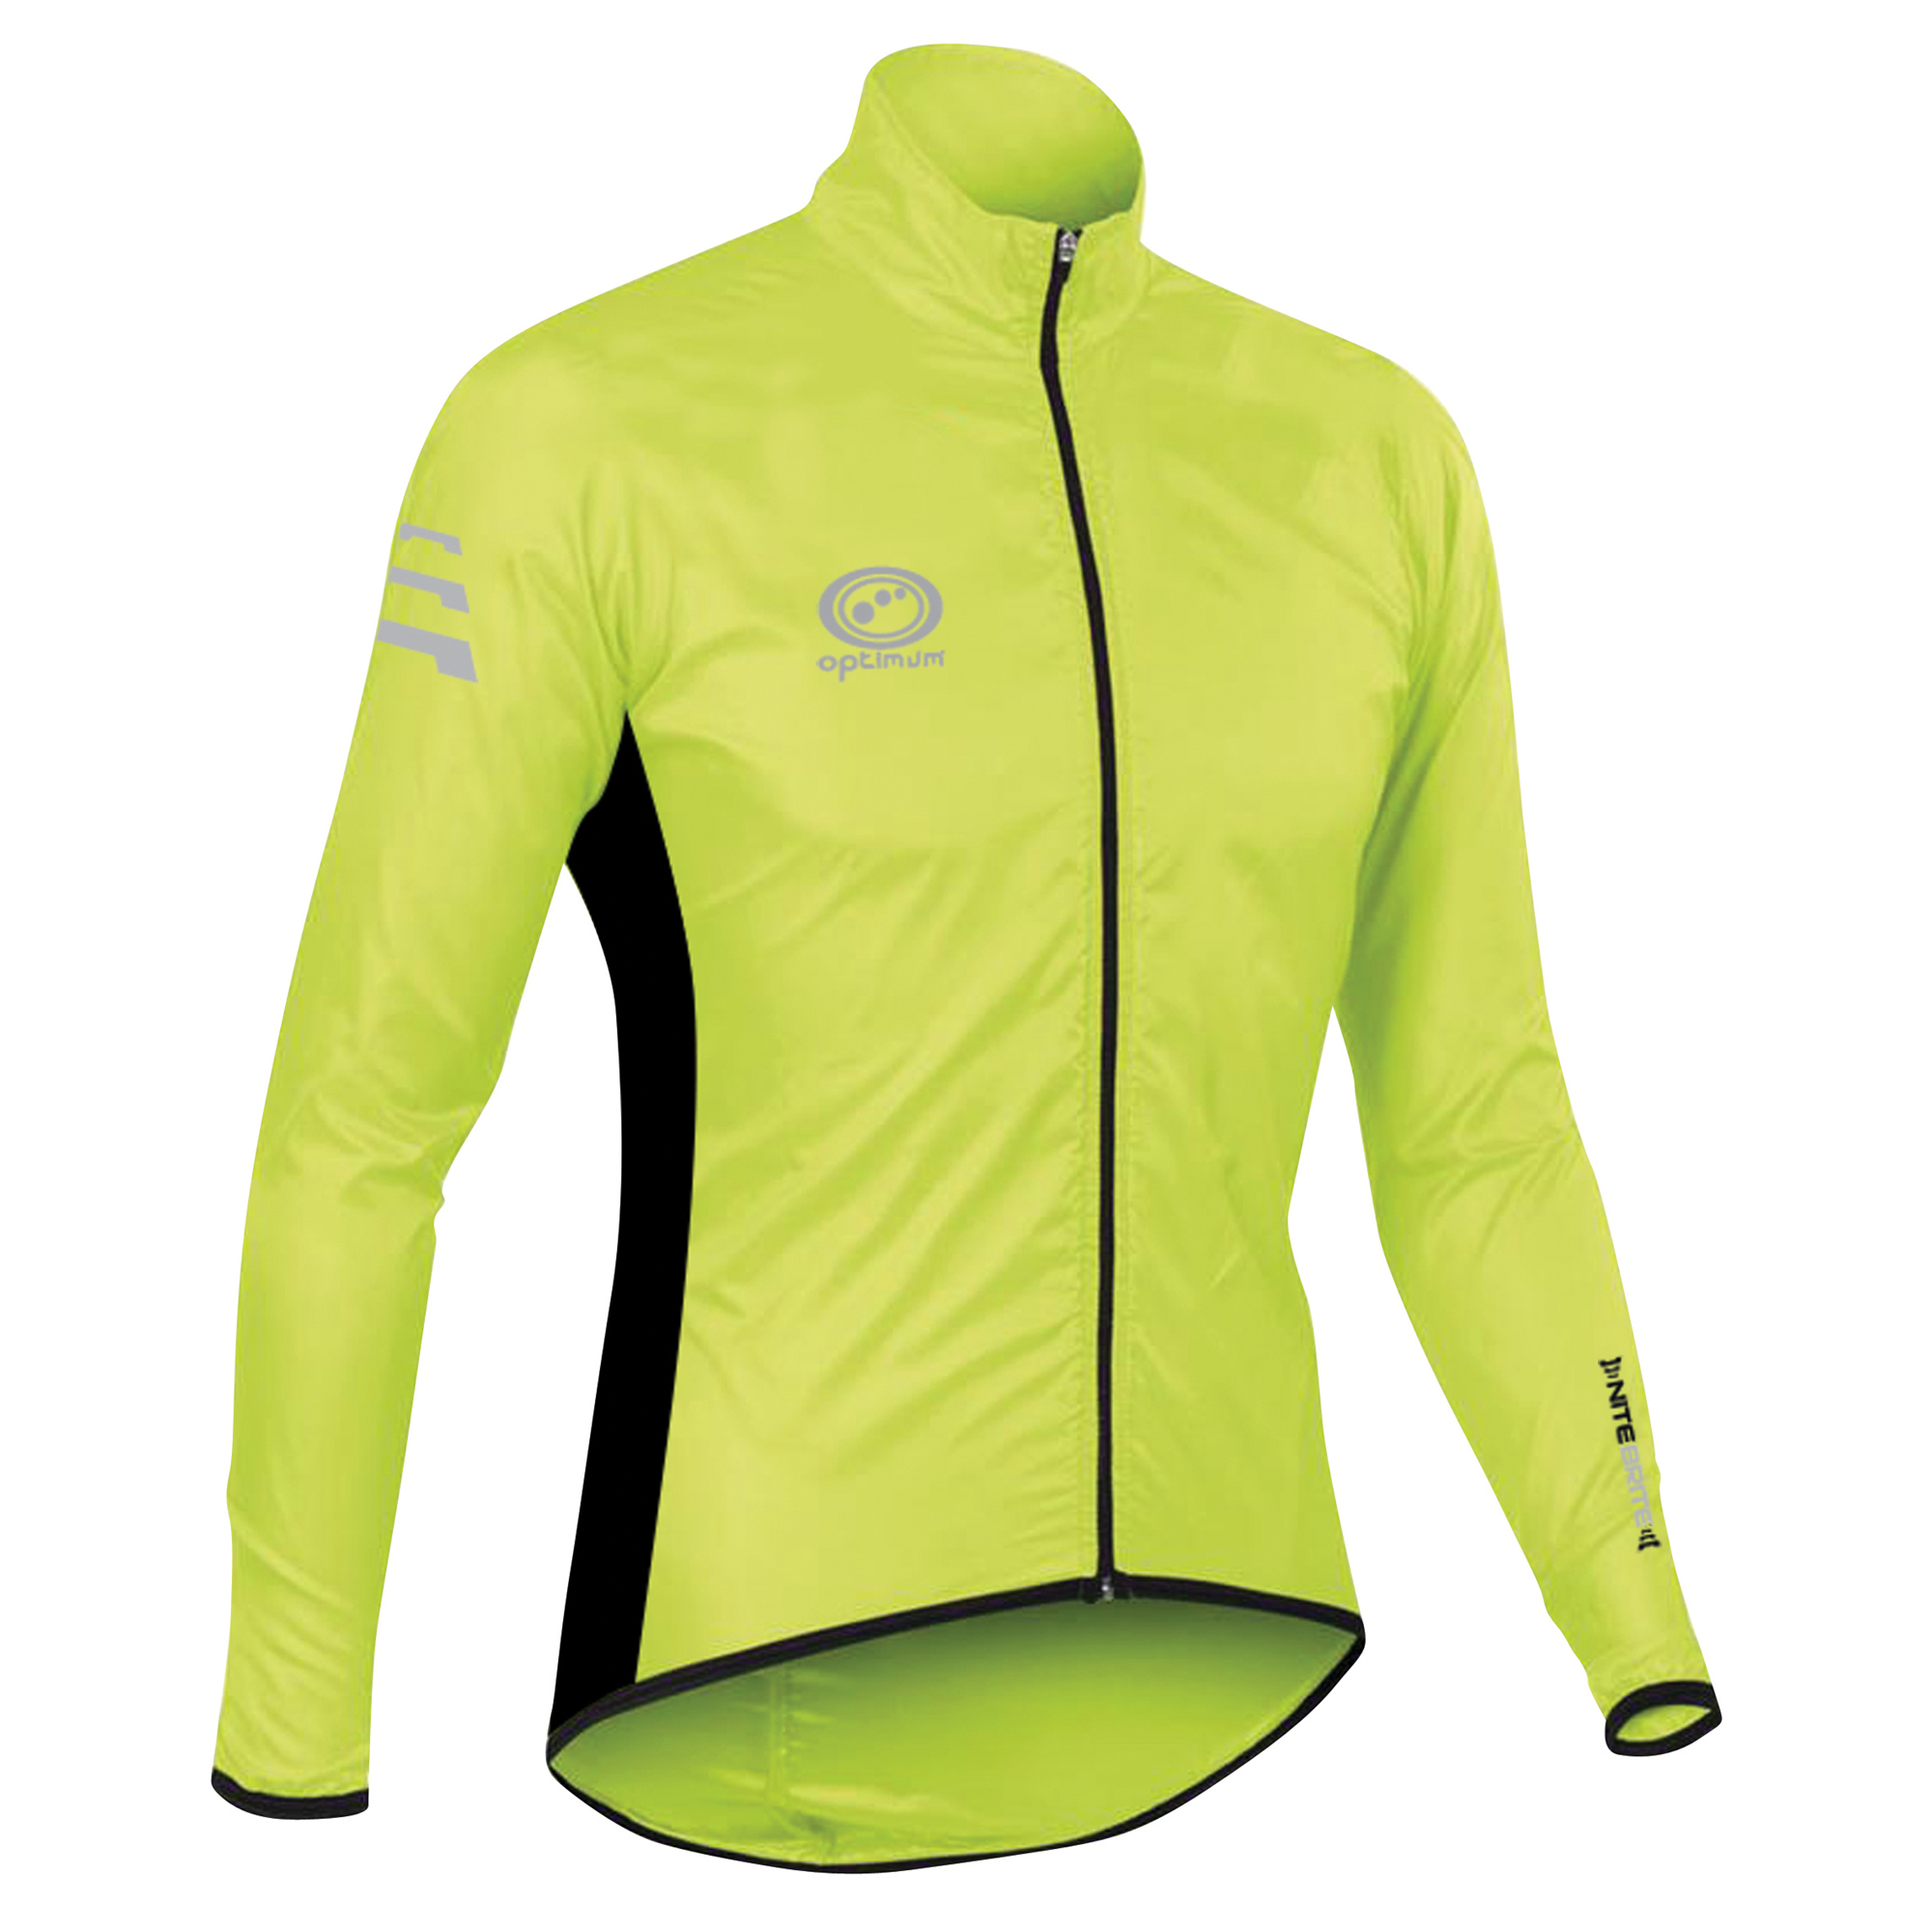 OPTIMUM Mens Nitebrite Hi-Vis Rain Jacket Running Cycling ...